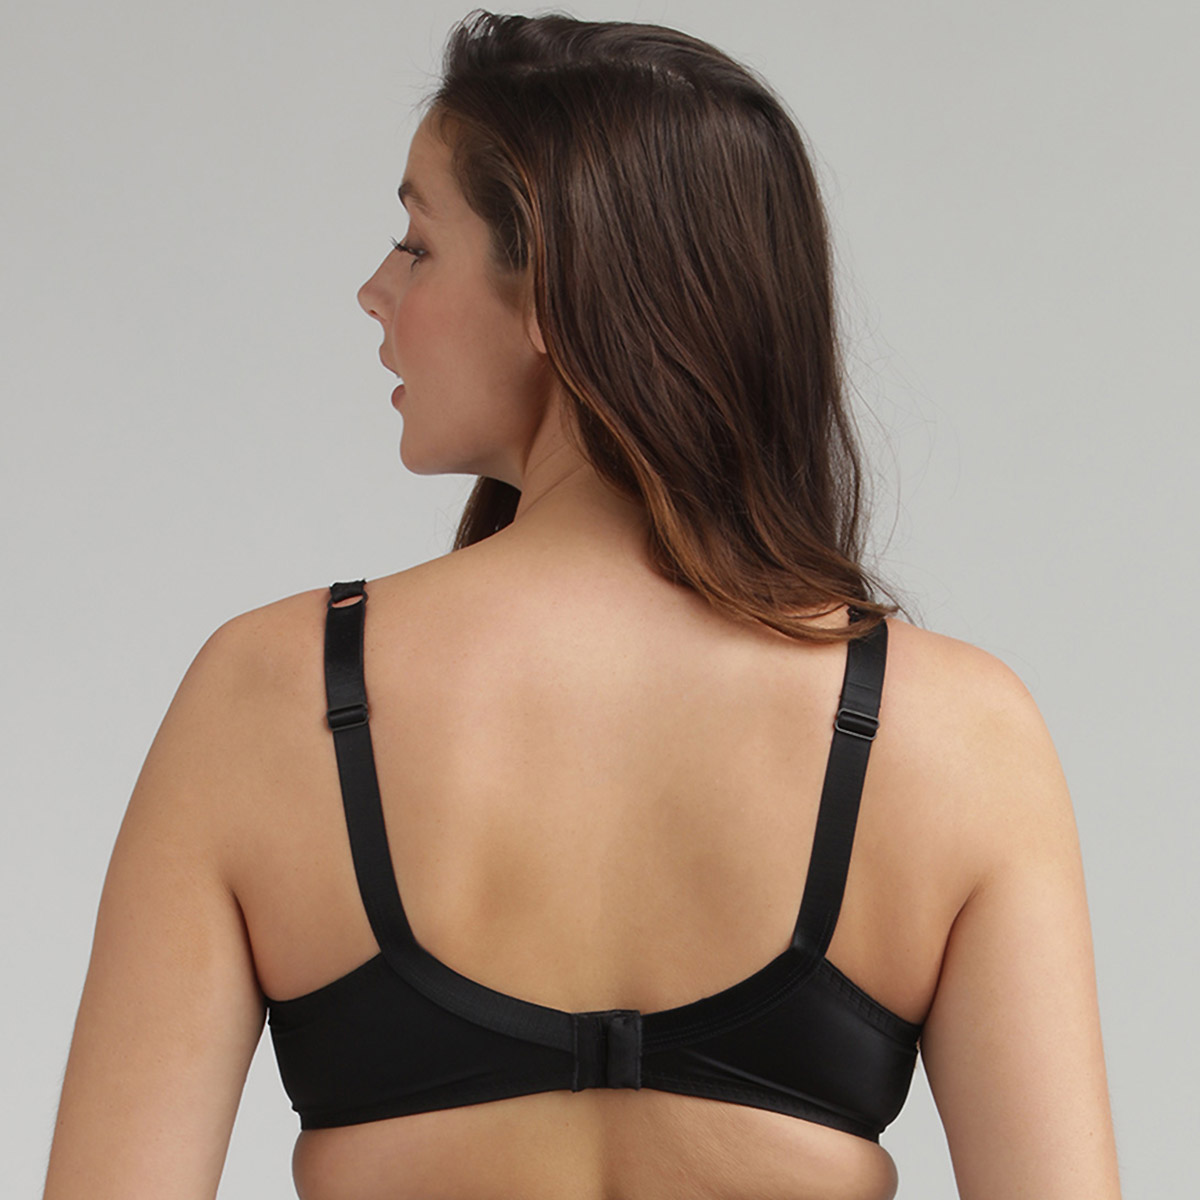 Full Cup Bra in Black – Perfect Silhouette, , PLAYTEX